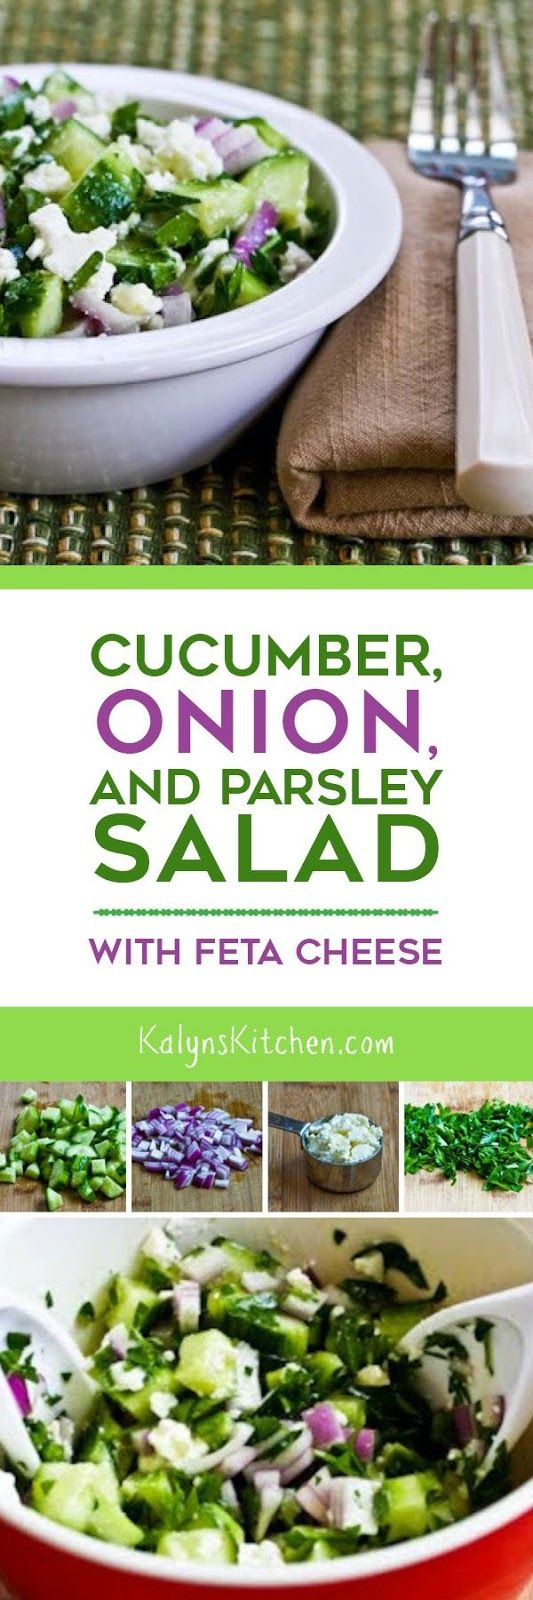 This simple Cucumber, Onion, and Parsley Salad with Feta Cheese has four of my favorite summer ingredients! And this tasty cucumber salad is low-carb, gluten-free, meatless, and South Beach Diet friendly. [found on KalynsKitchen.com]